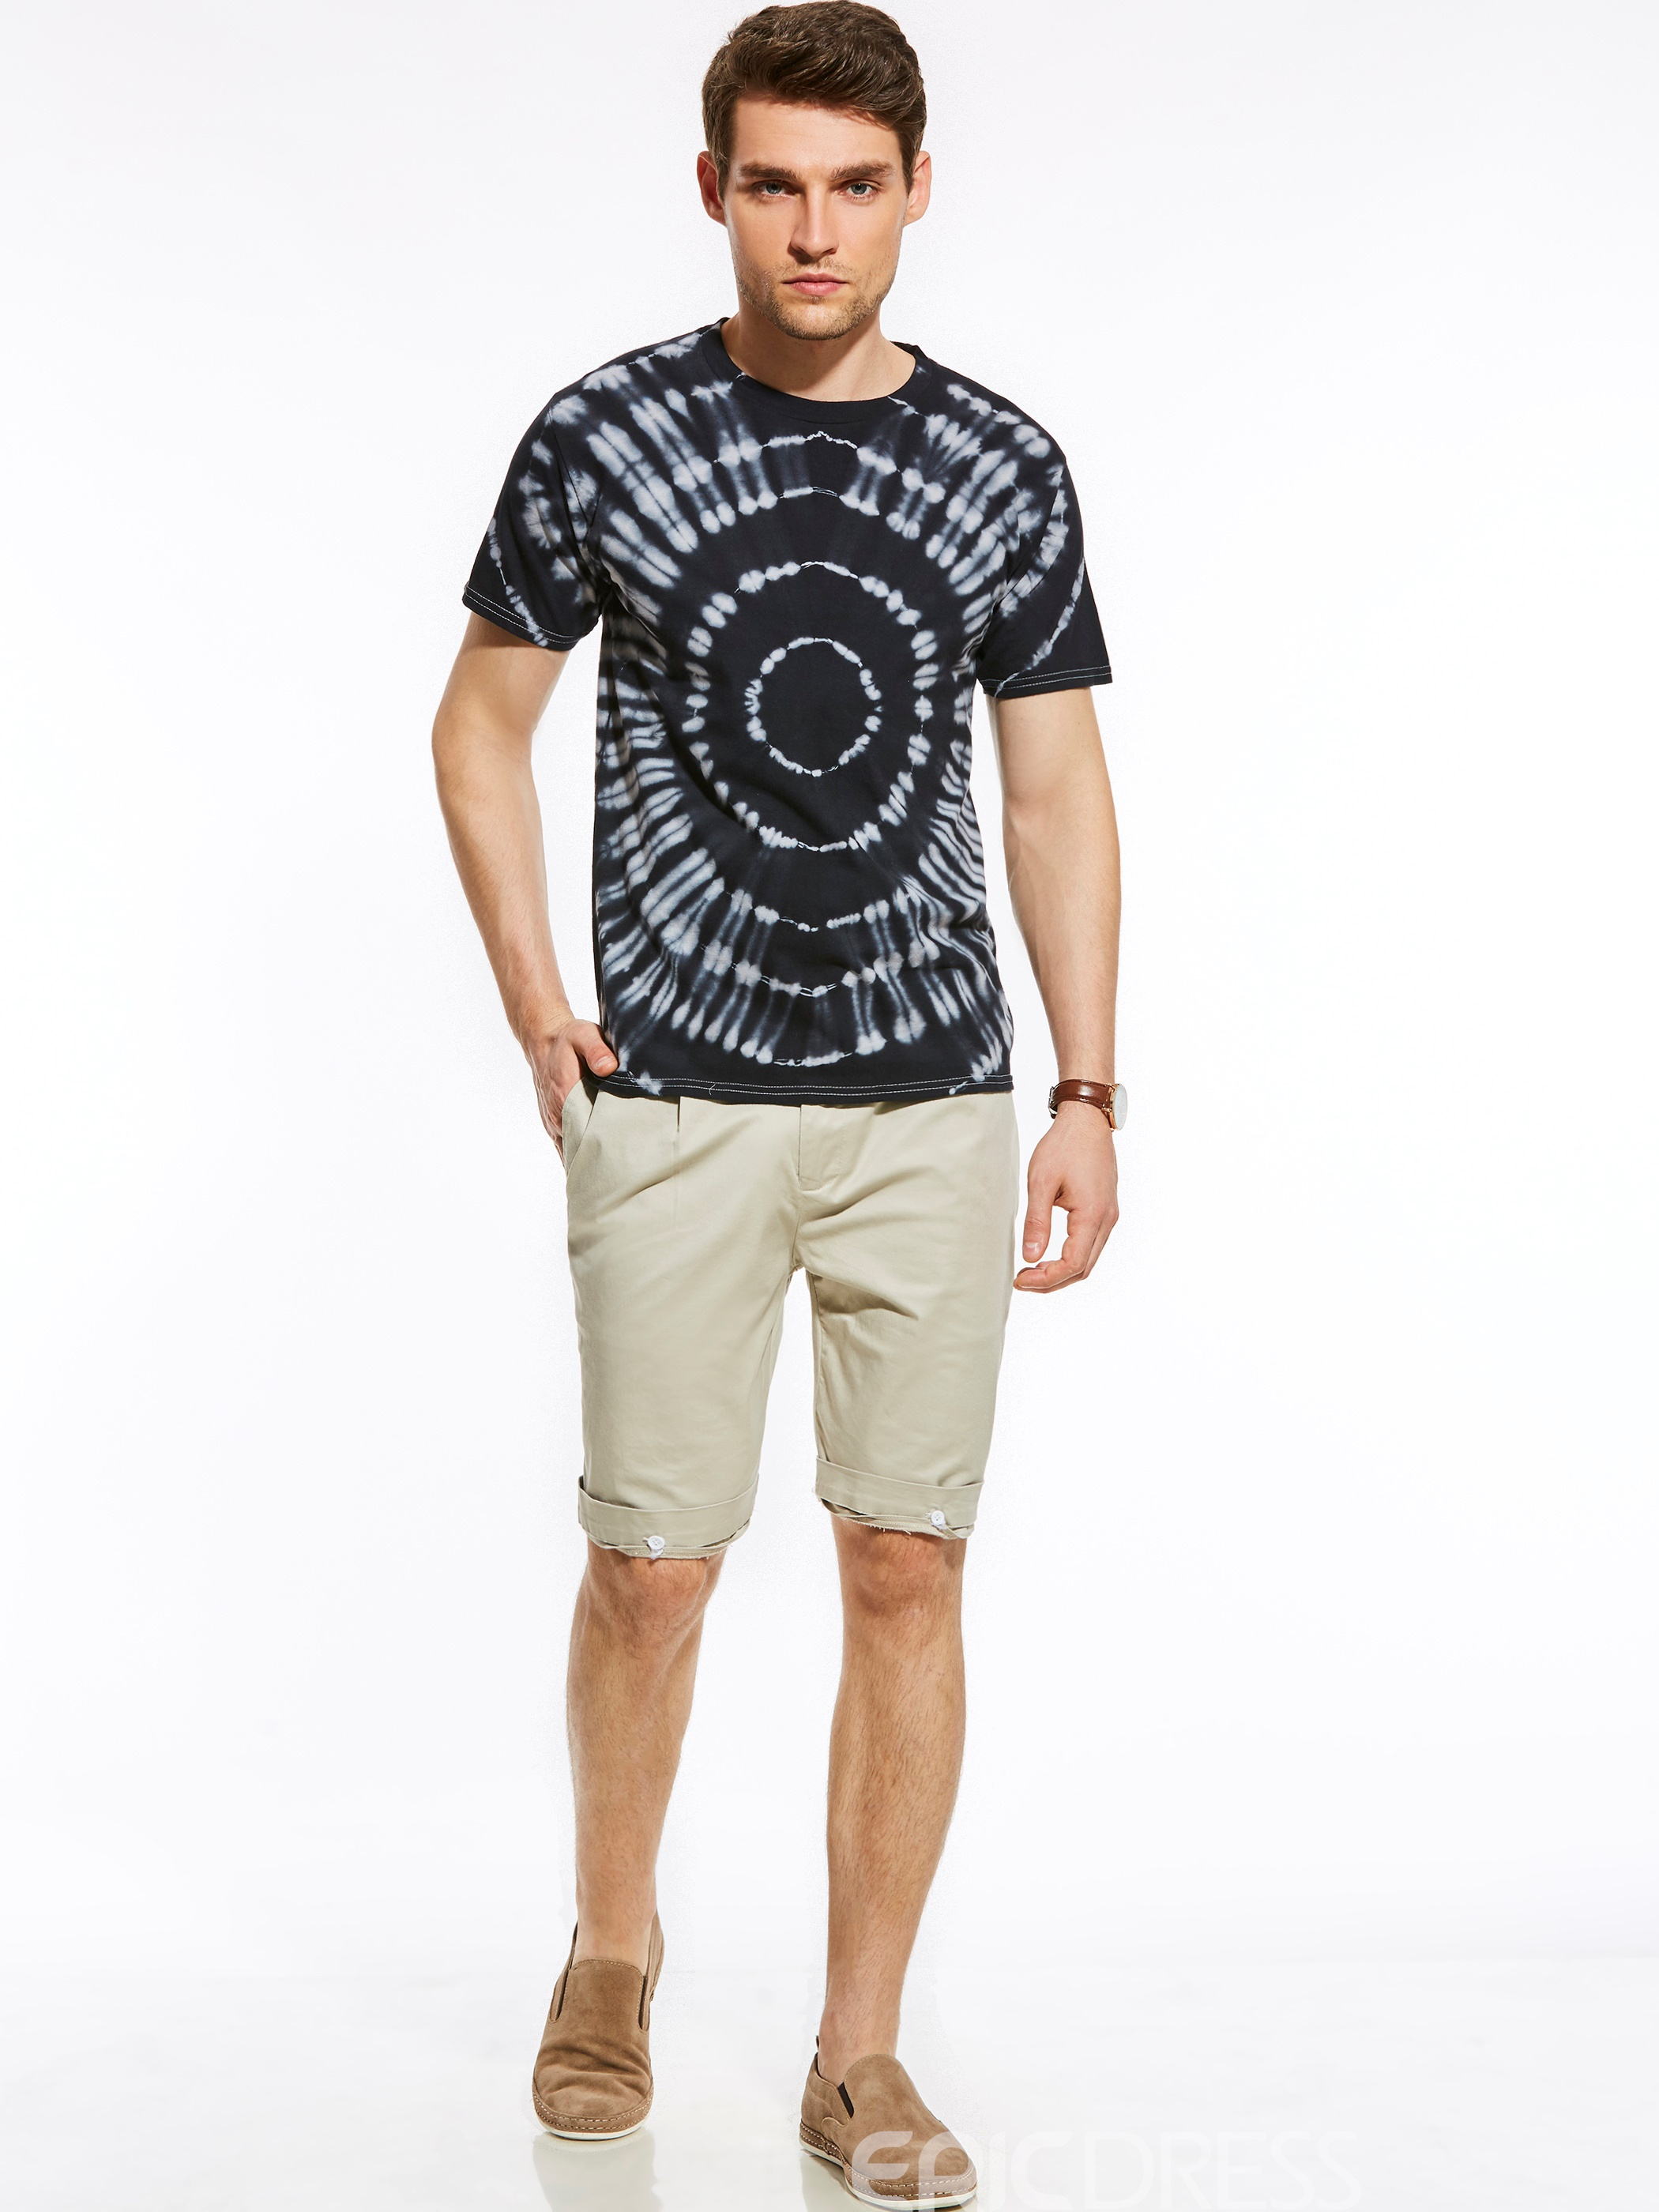 Ericdres Short Sleeve Unique Print Vogue Quality Men's T-Shirt